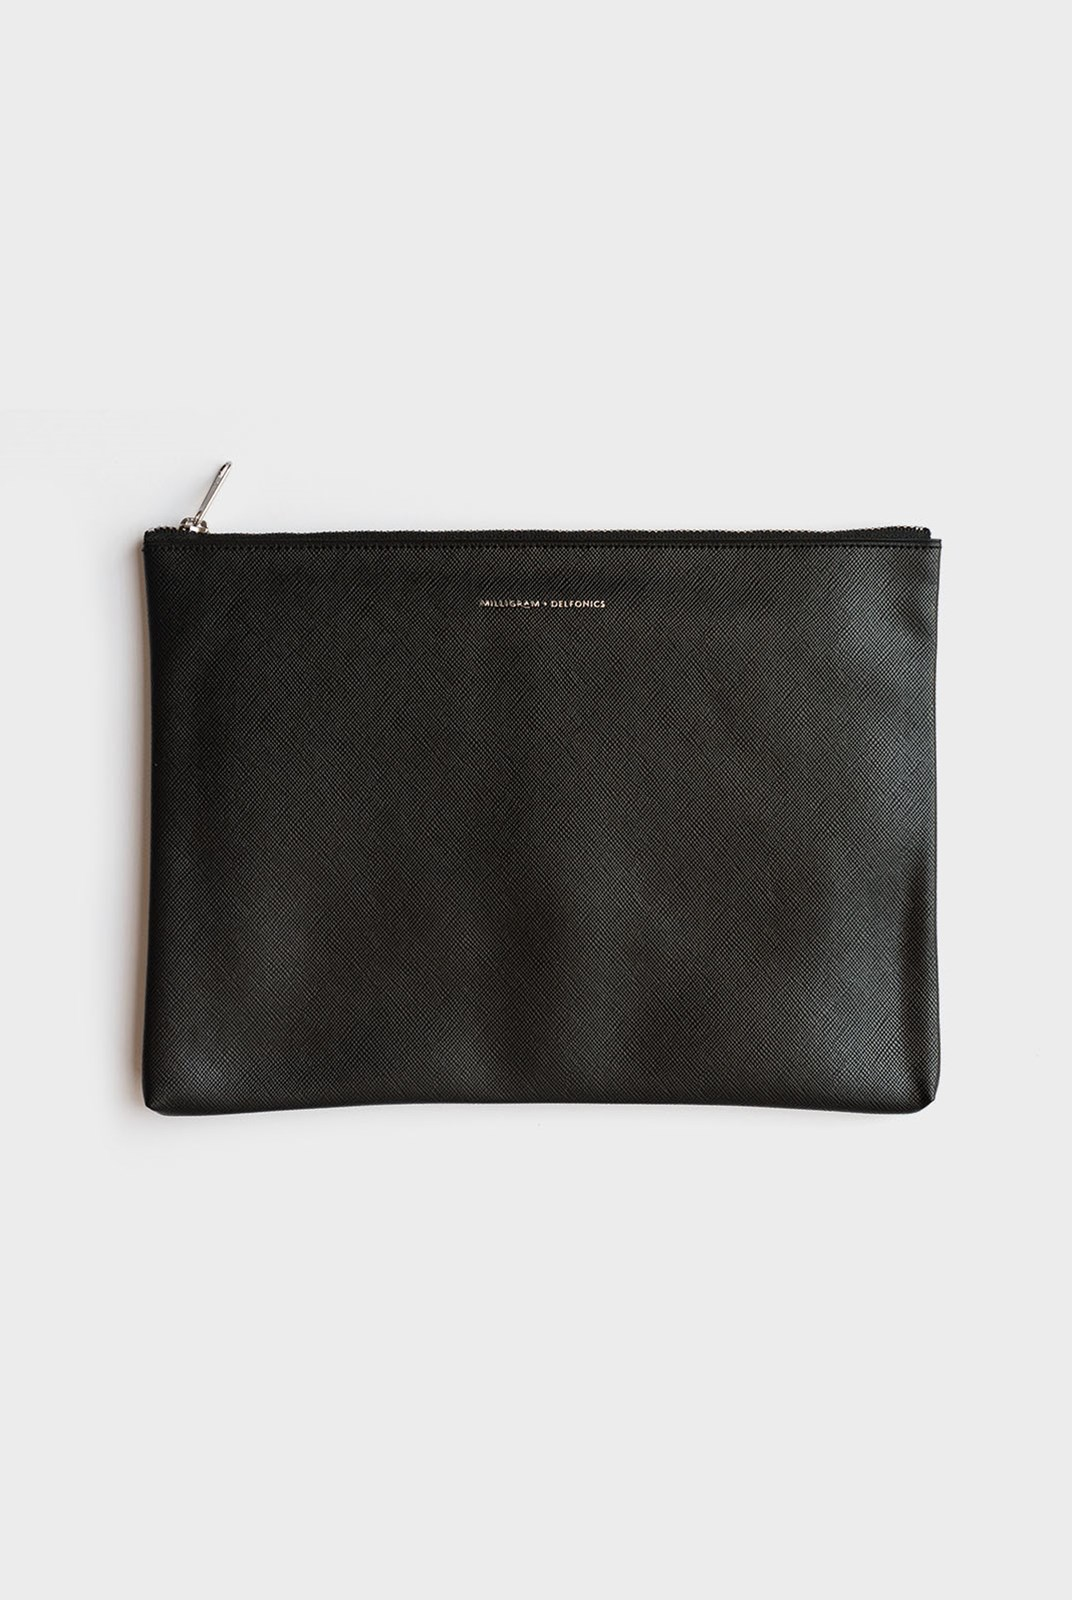 Milligram - Delfonics Special Edition - Pouch - Large - 26 x 18cm - Black